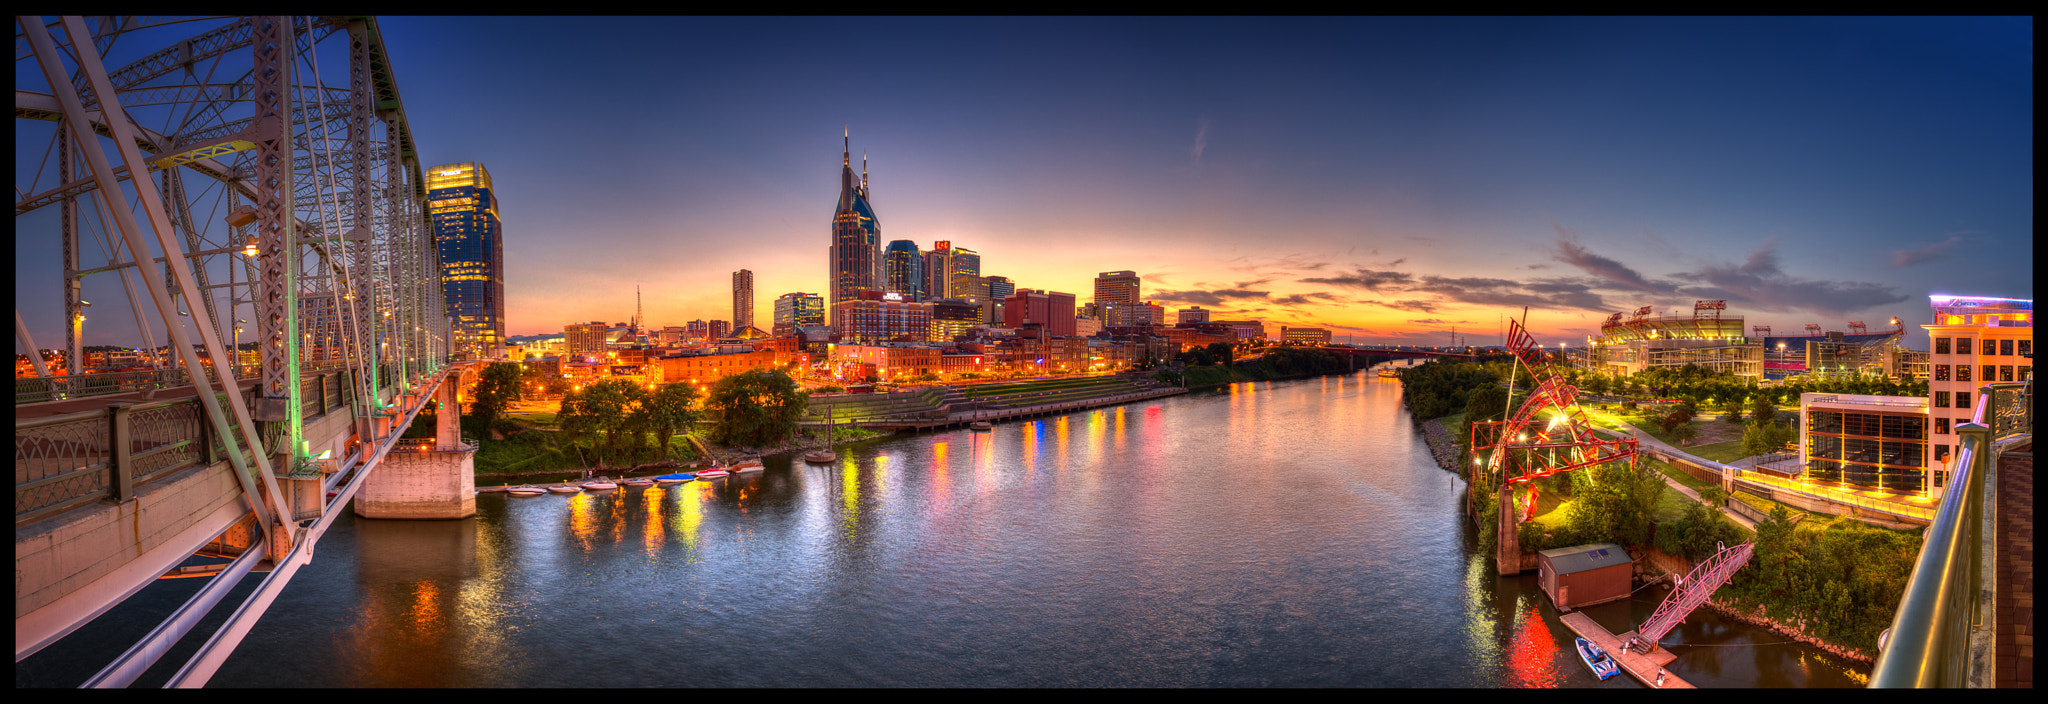 Photograph Nashville Panorama by Brett Engle on 500px